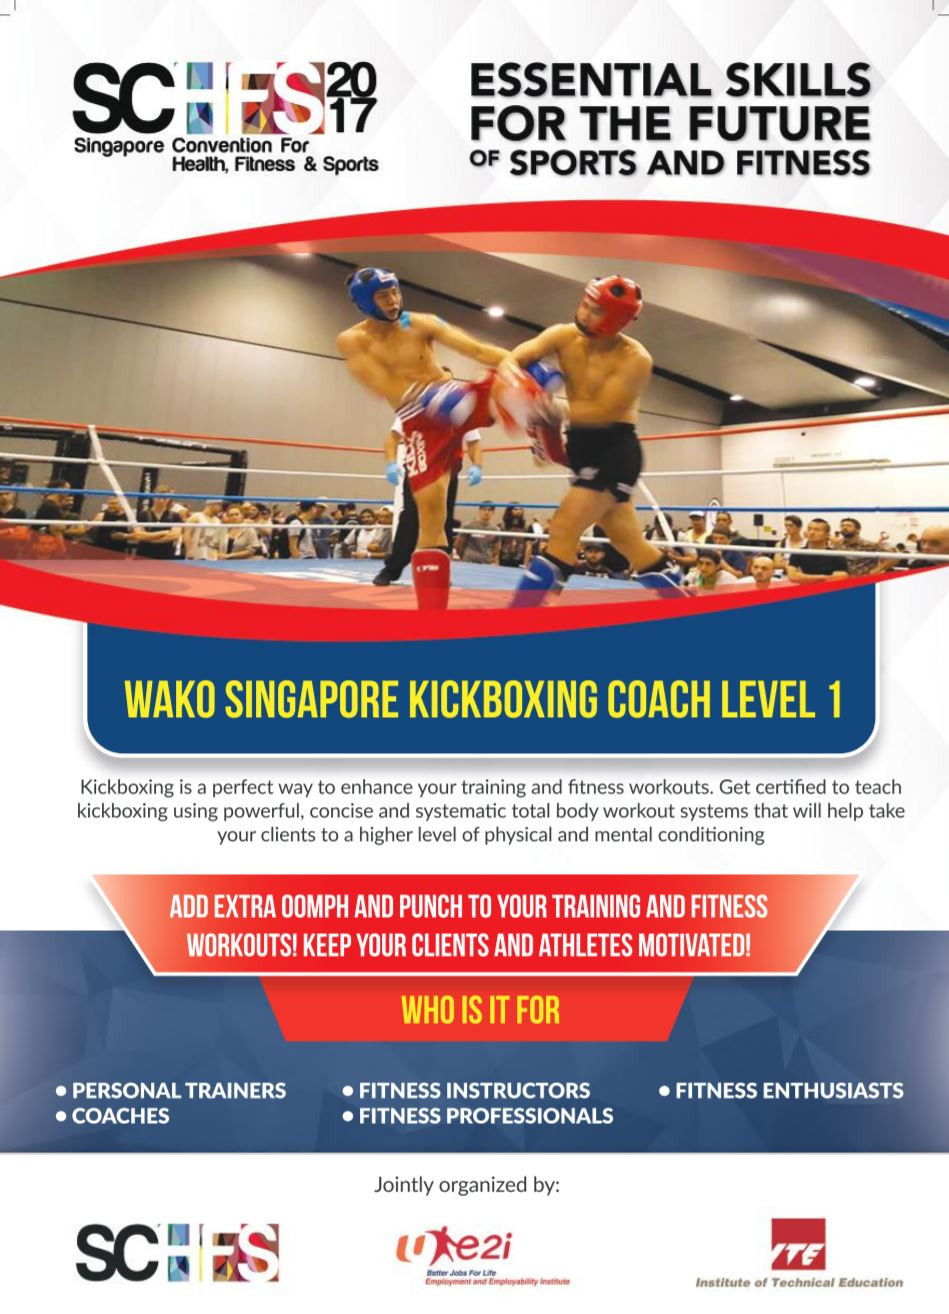 WAKO Singapore Kickboxing Coach Level 1